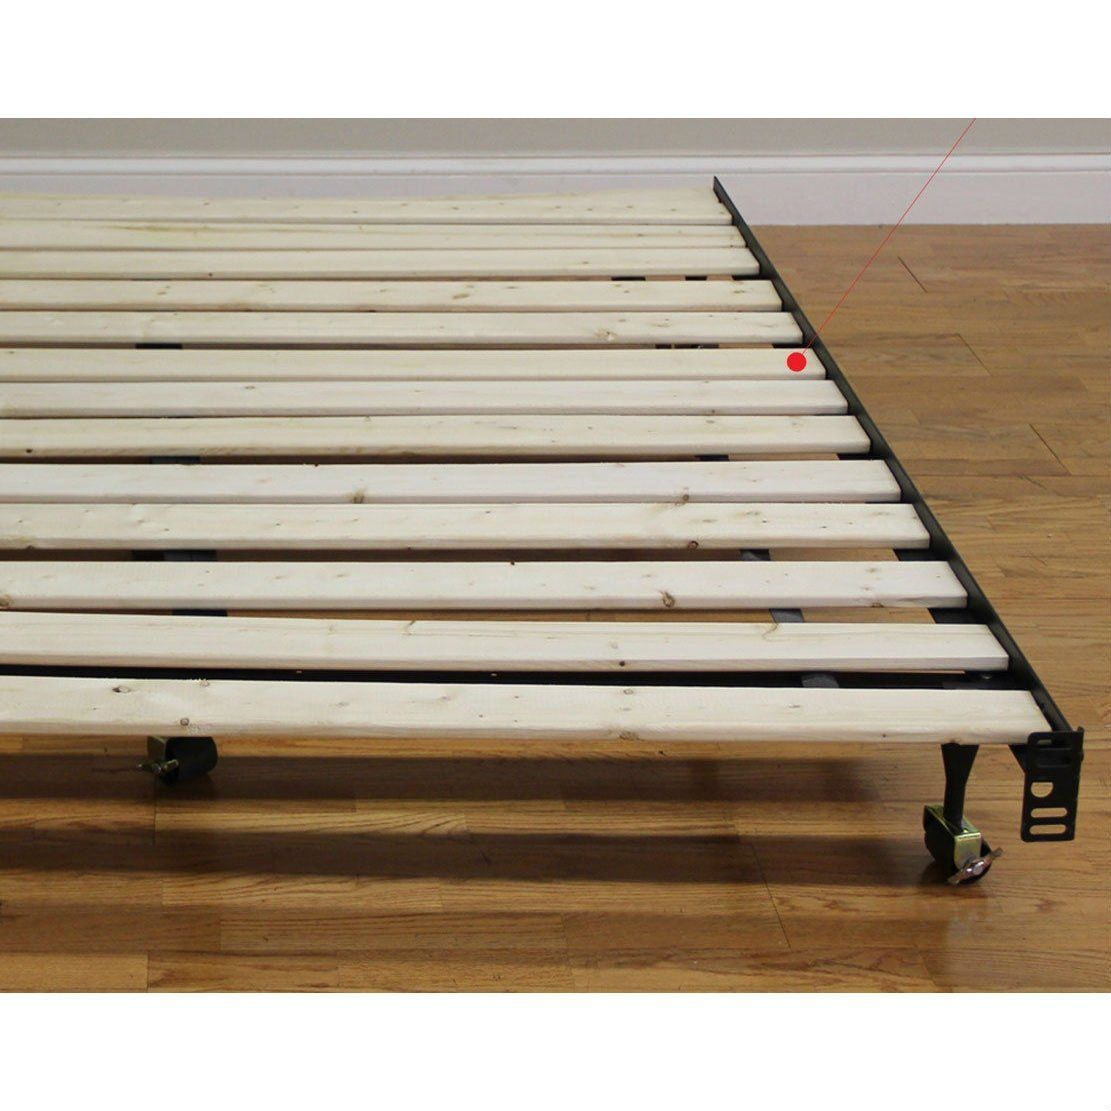 Twin Xl Size Wood Slats For Metal Bed Frame Or Platform Beds In 2021 Bed Slats Metal Bed Frame Wooden Bed Slats Twin bed frame with slats